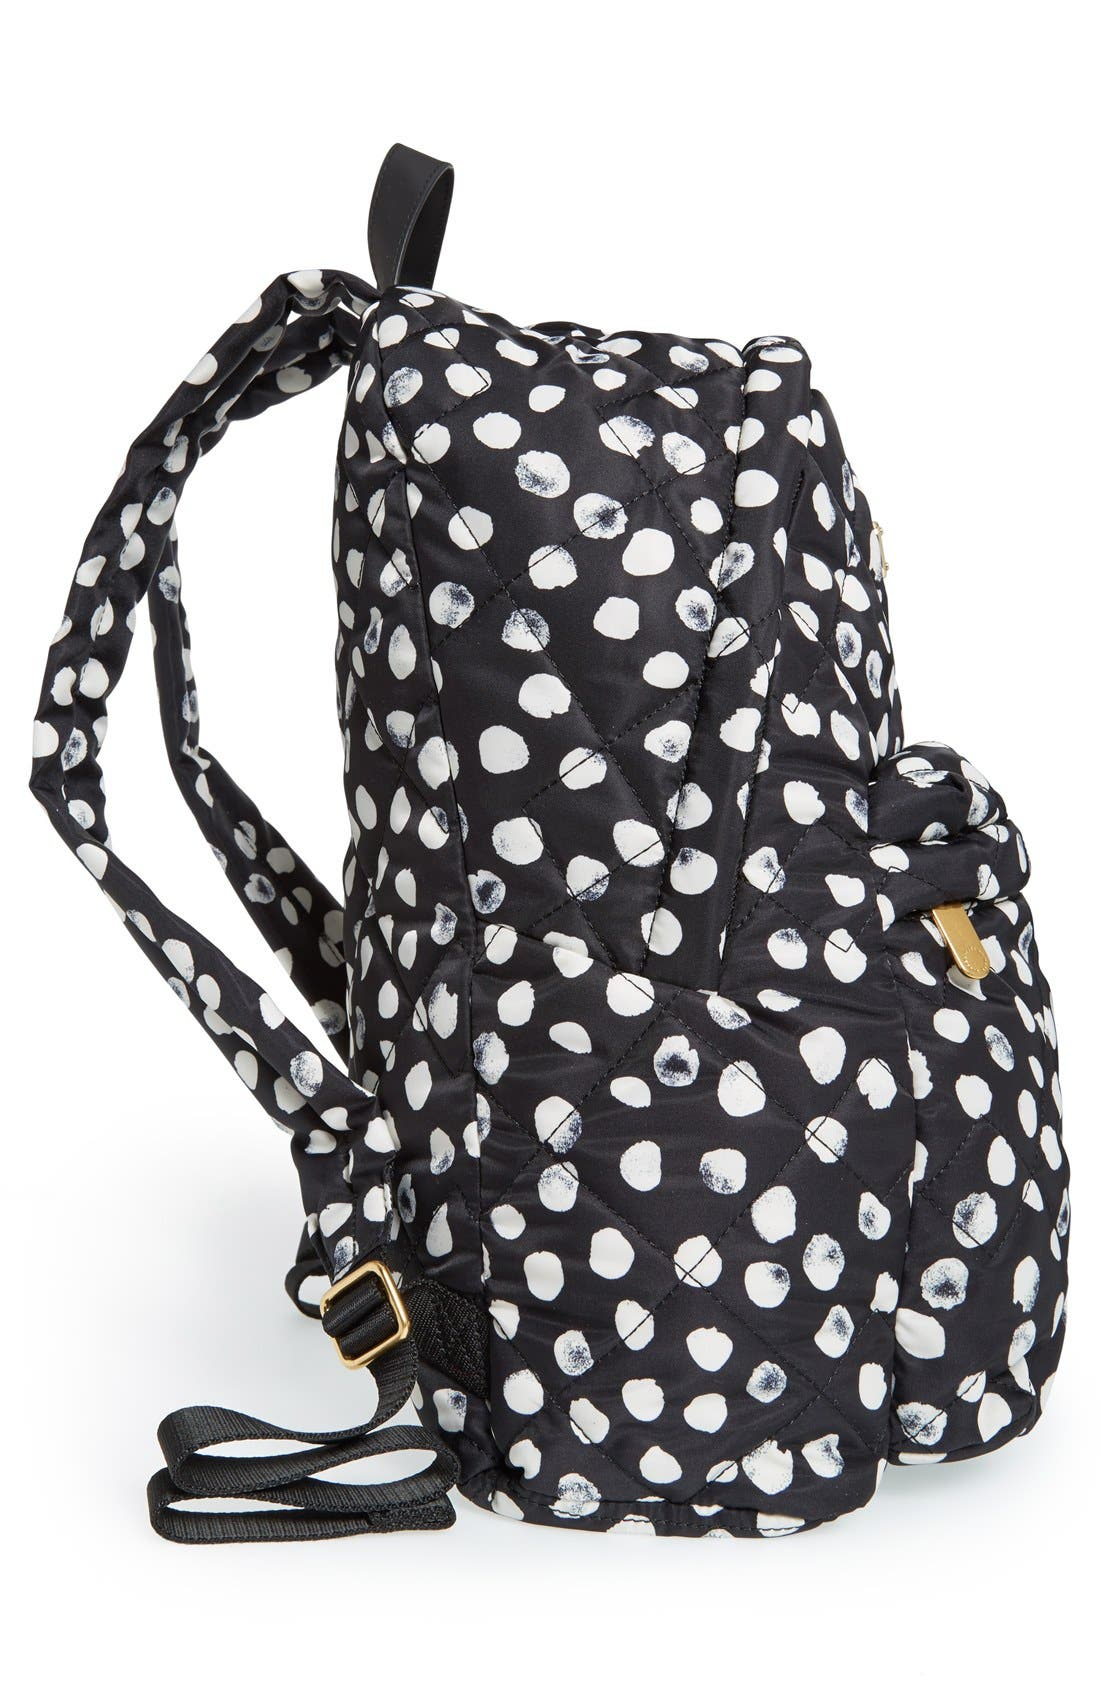 MARC JACOBS, MARC BY MARC JACOBS 'Crosby' Quilted Backpack, Alternate thumbnail 3, color, 001